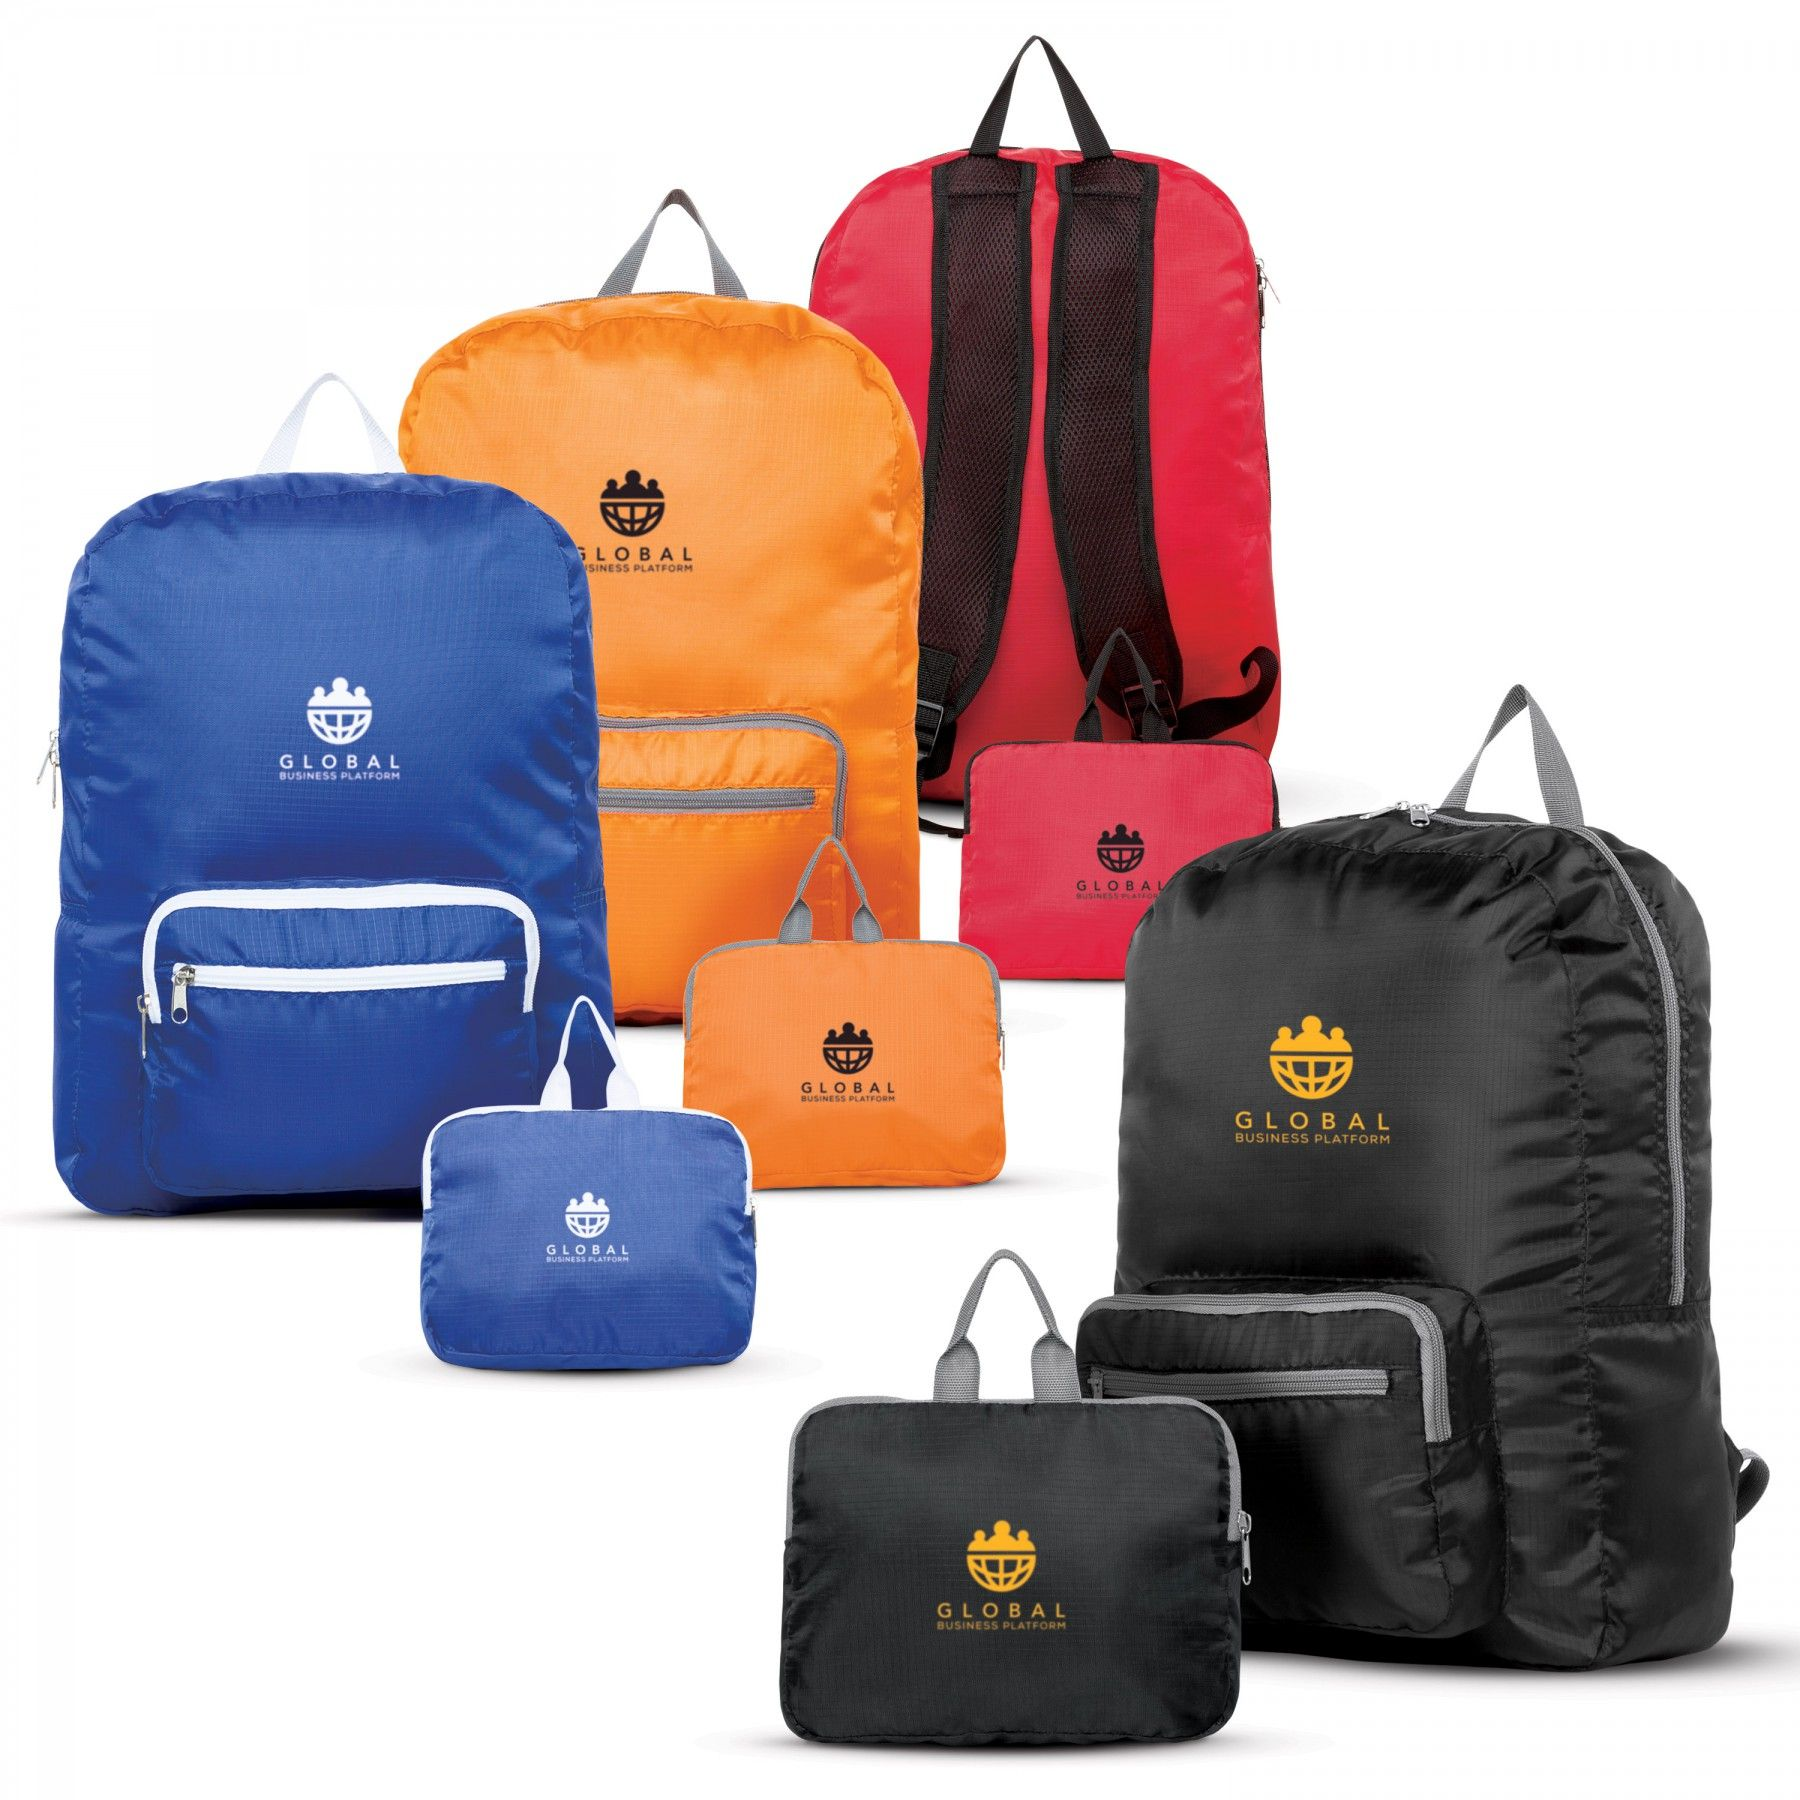 Printed 210D Ripstop Polyester Backpacks